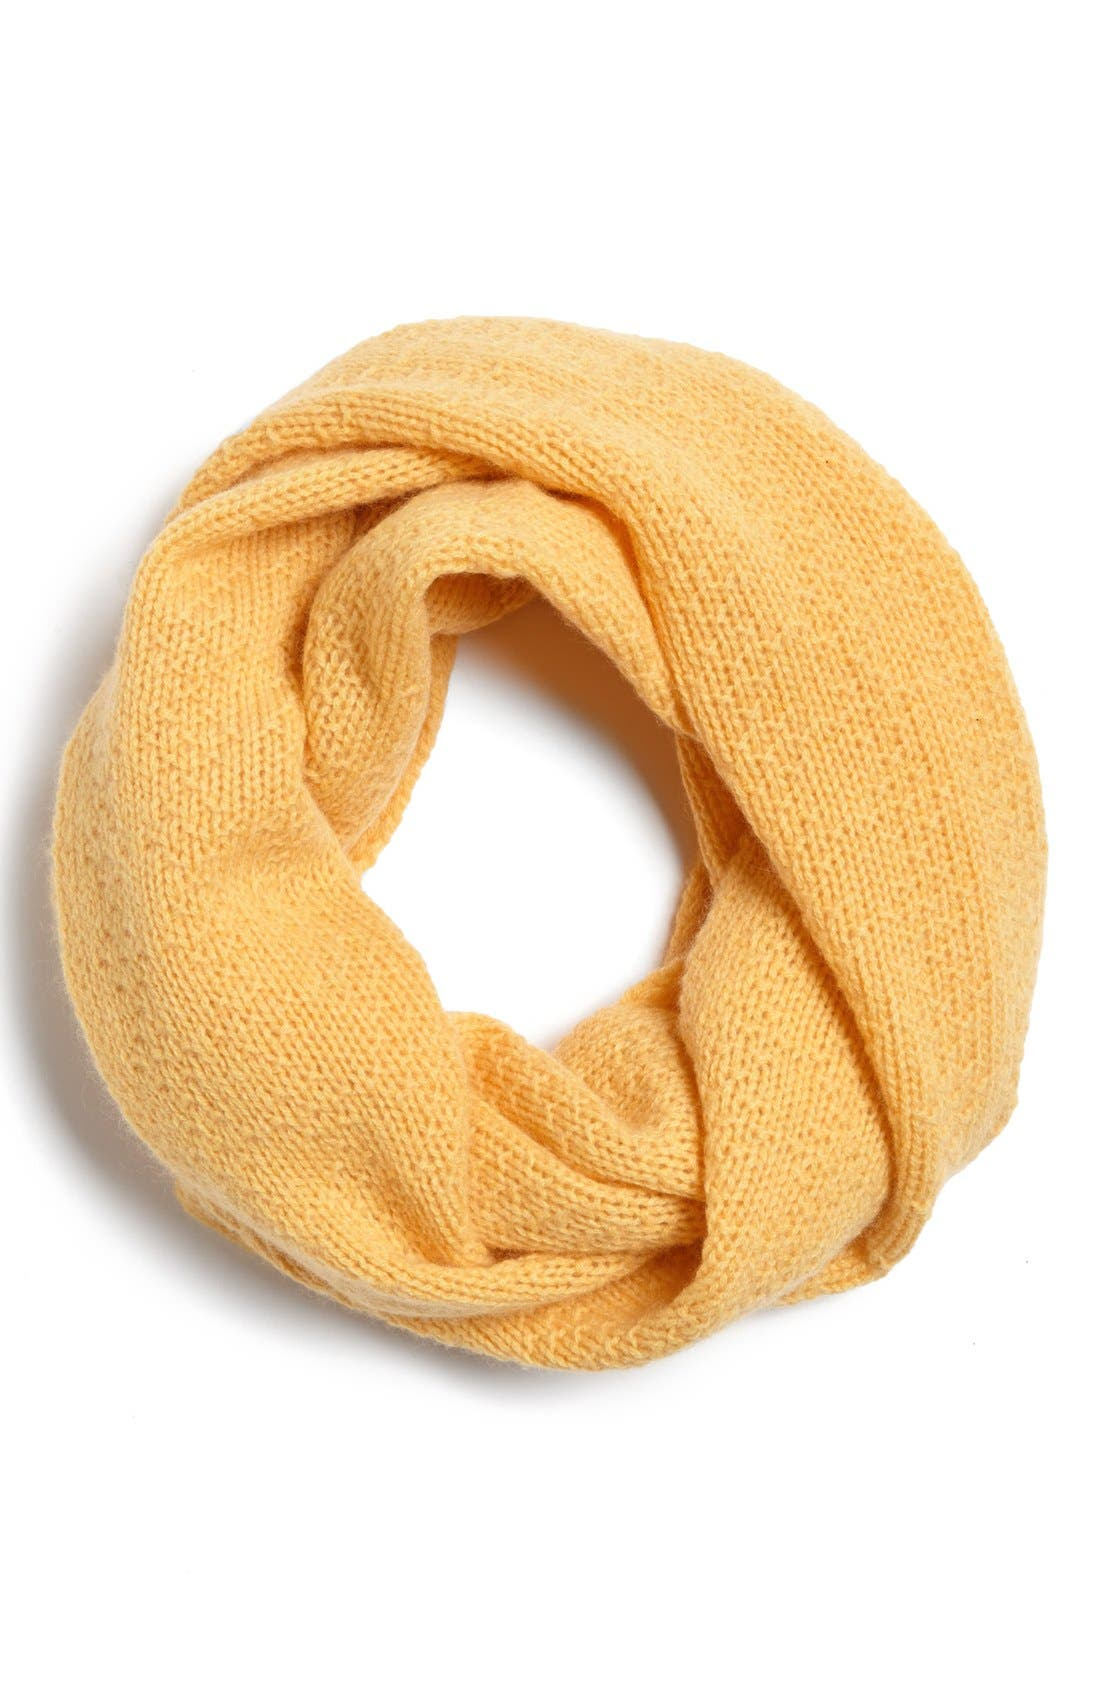 Main Image - Nordstrom Pointelle Knit Cashmere Infinity Scarf